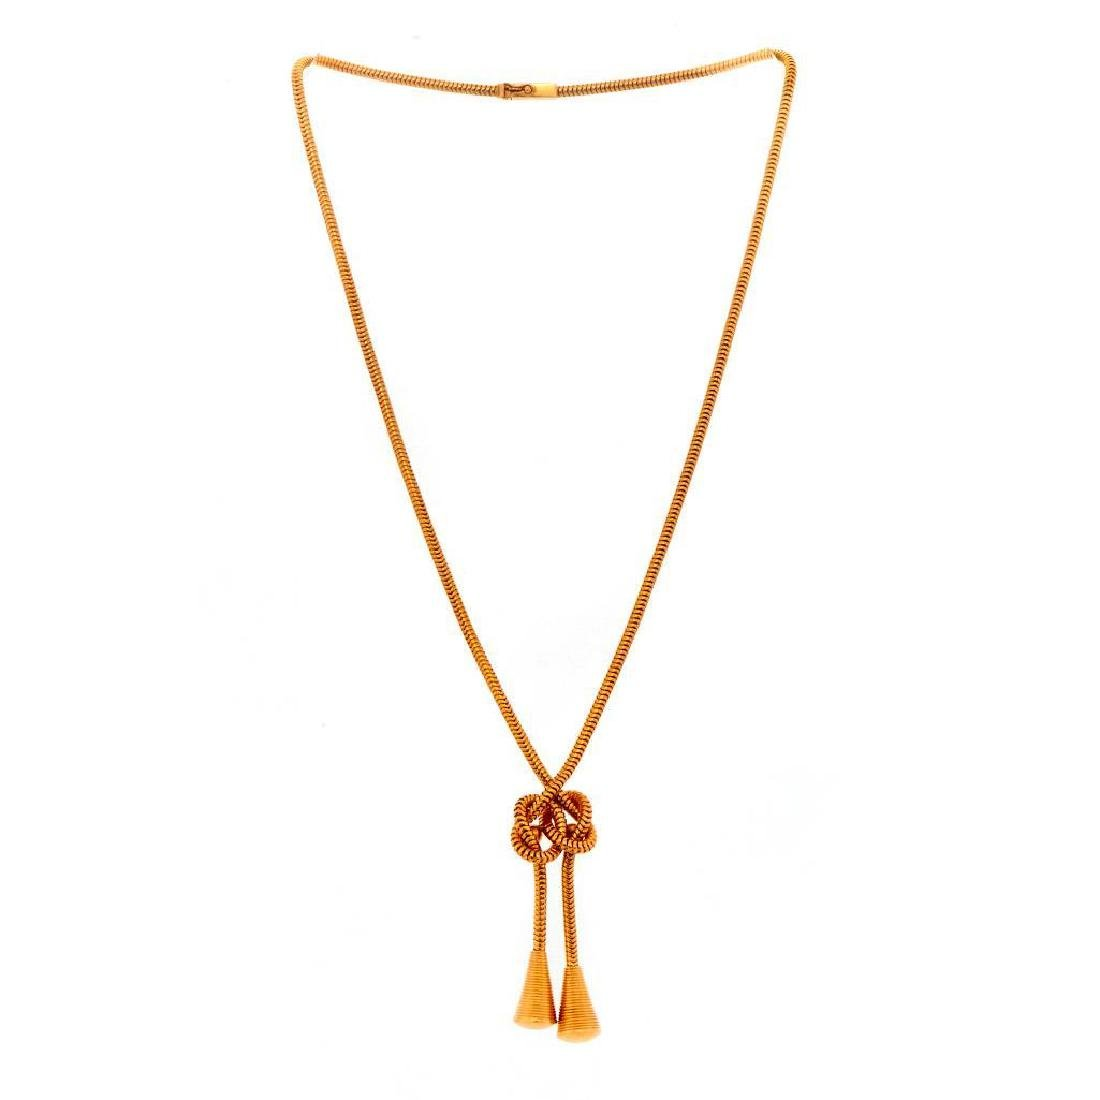 Retro 18k gold snake chain knot design necklace